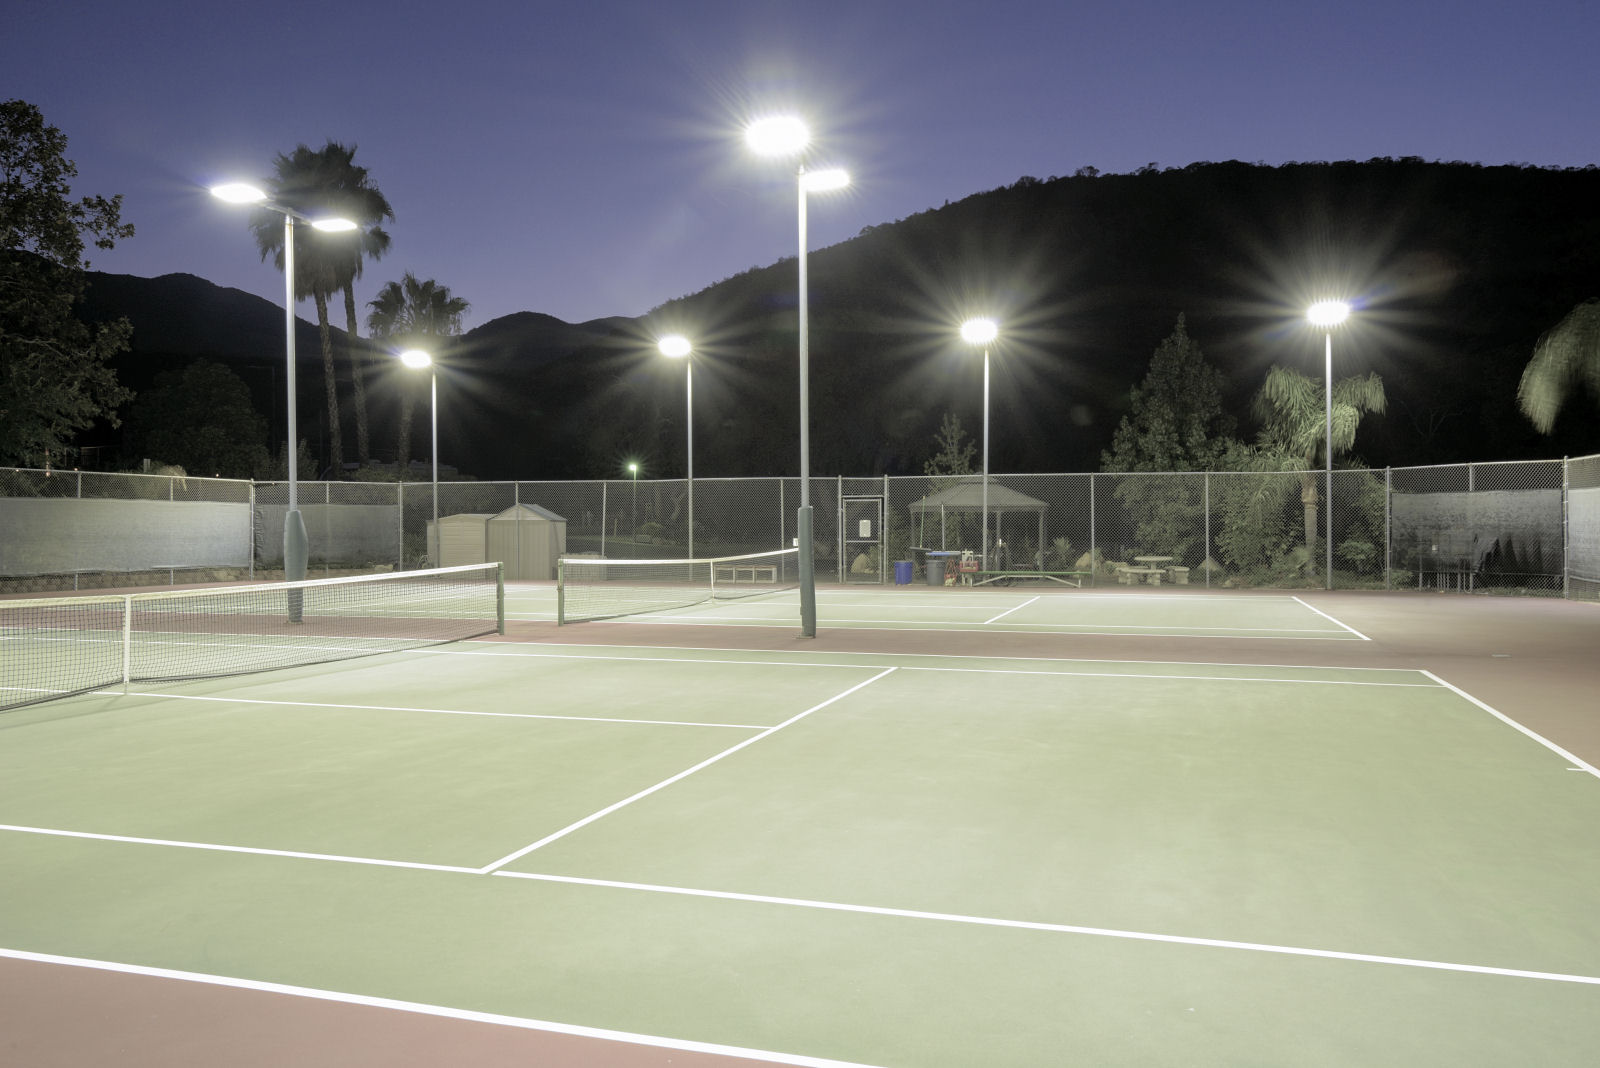 Tennis Court Lighting The Effects Of Spill Light And Glare